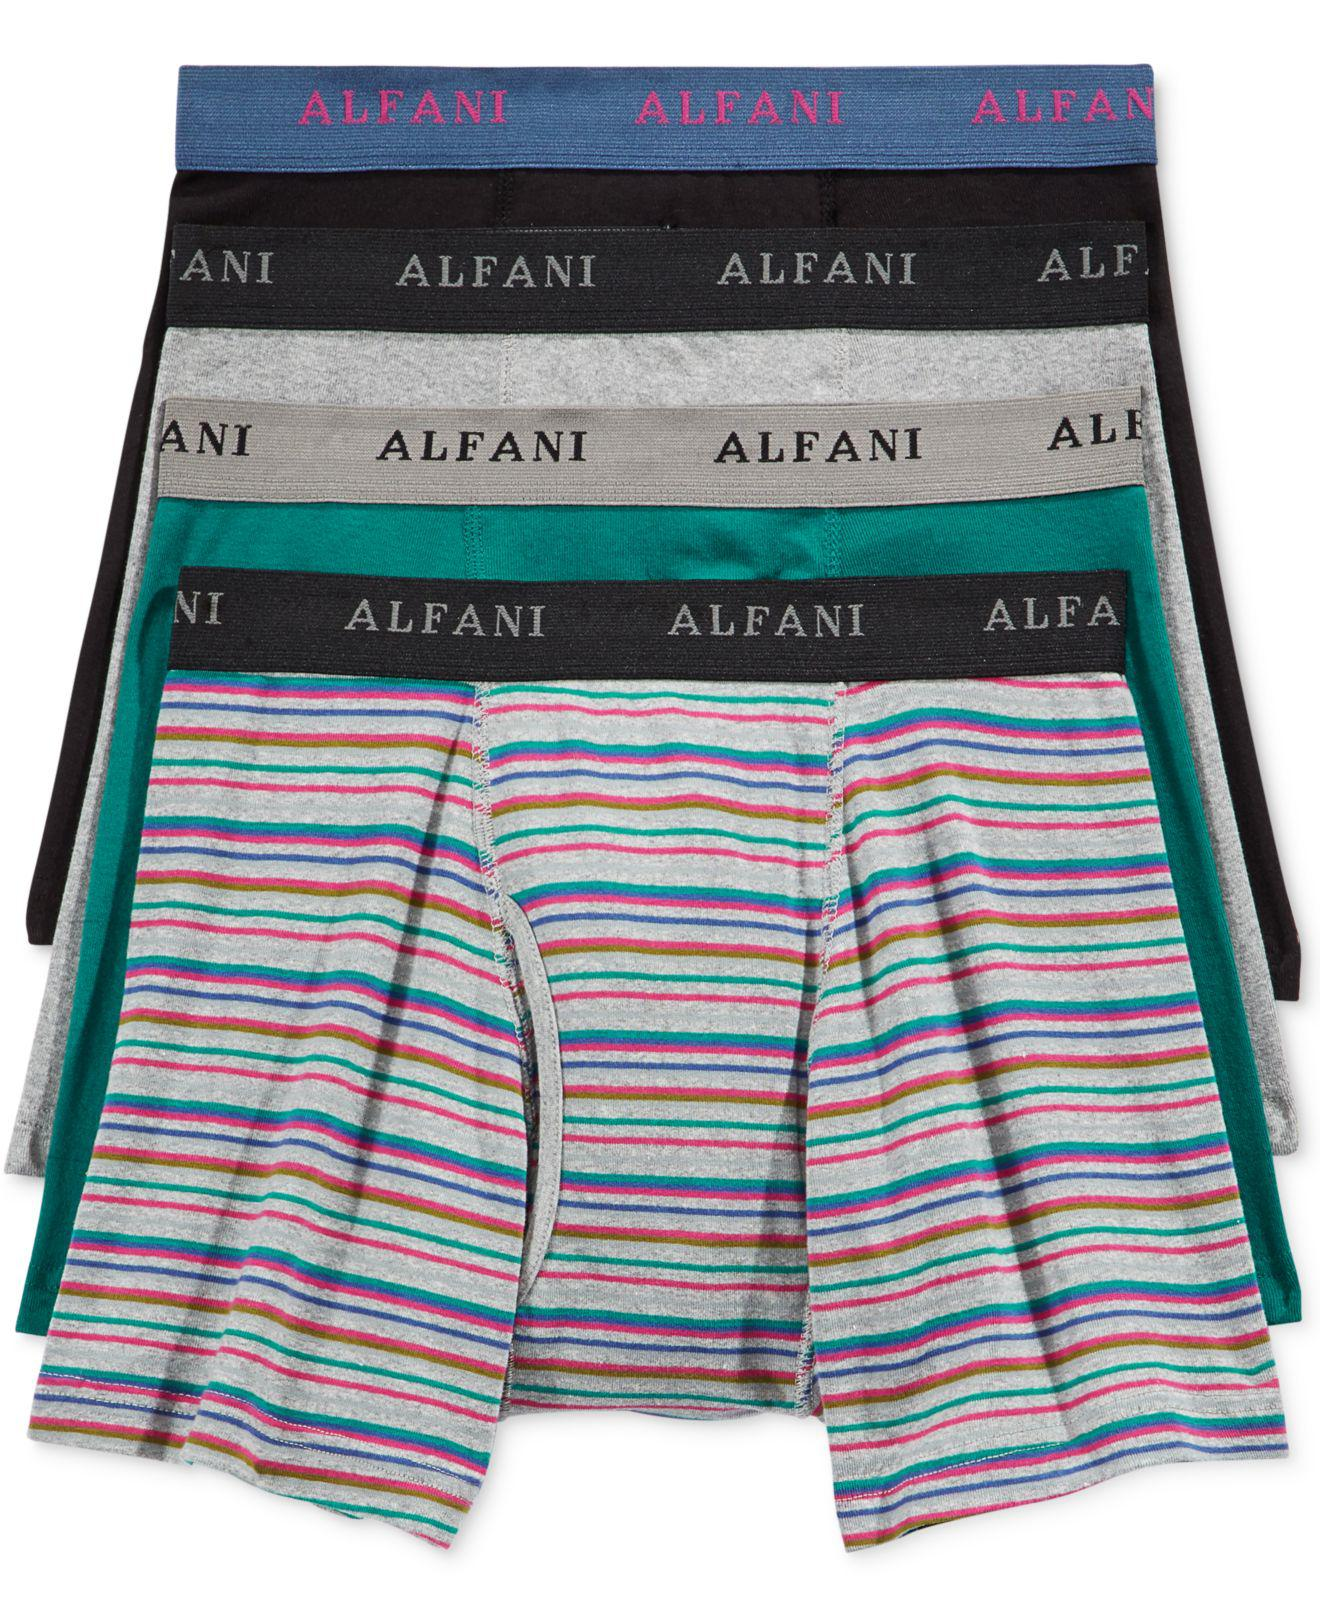 d5a52365fa84 Alfani - Blue Men's 4-pk. Striped Boxer Briefs for Men - Lyst. View  fullscreen